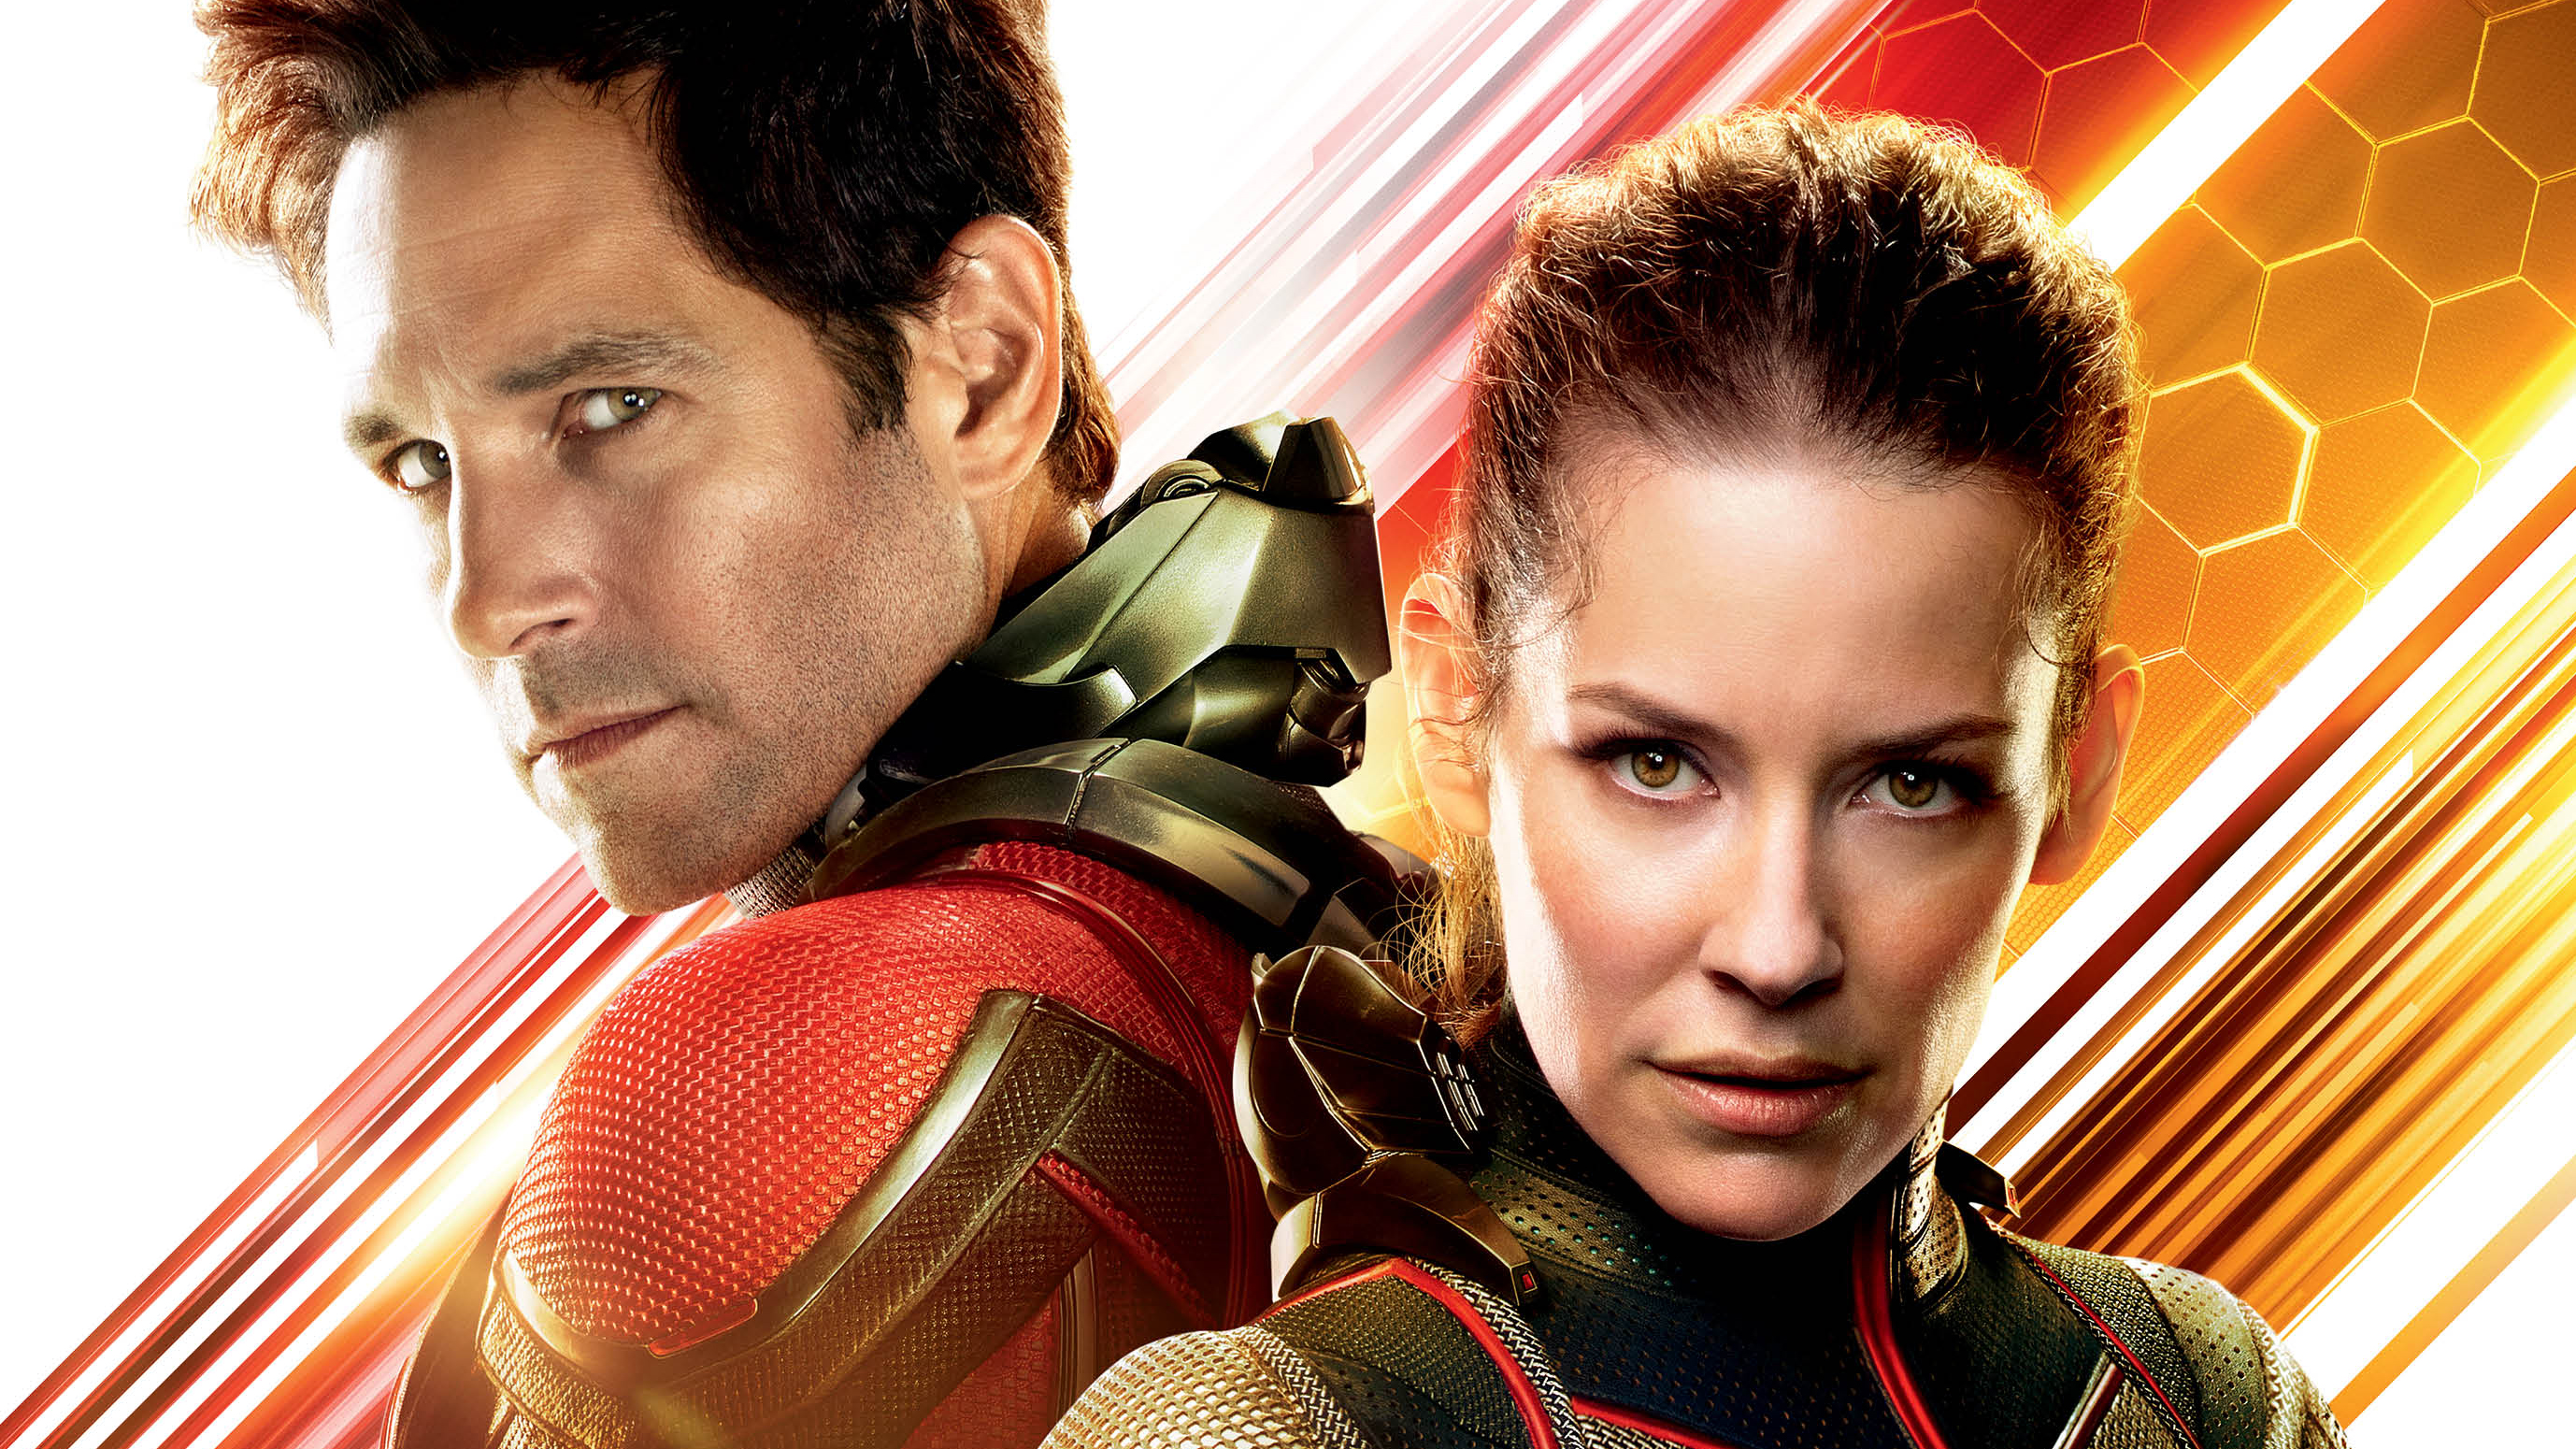 Resultado de imagem para ant man and the wasp wallpaper